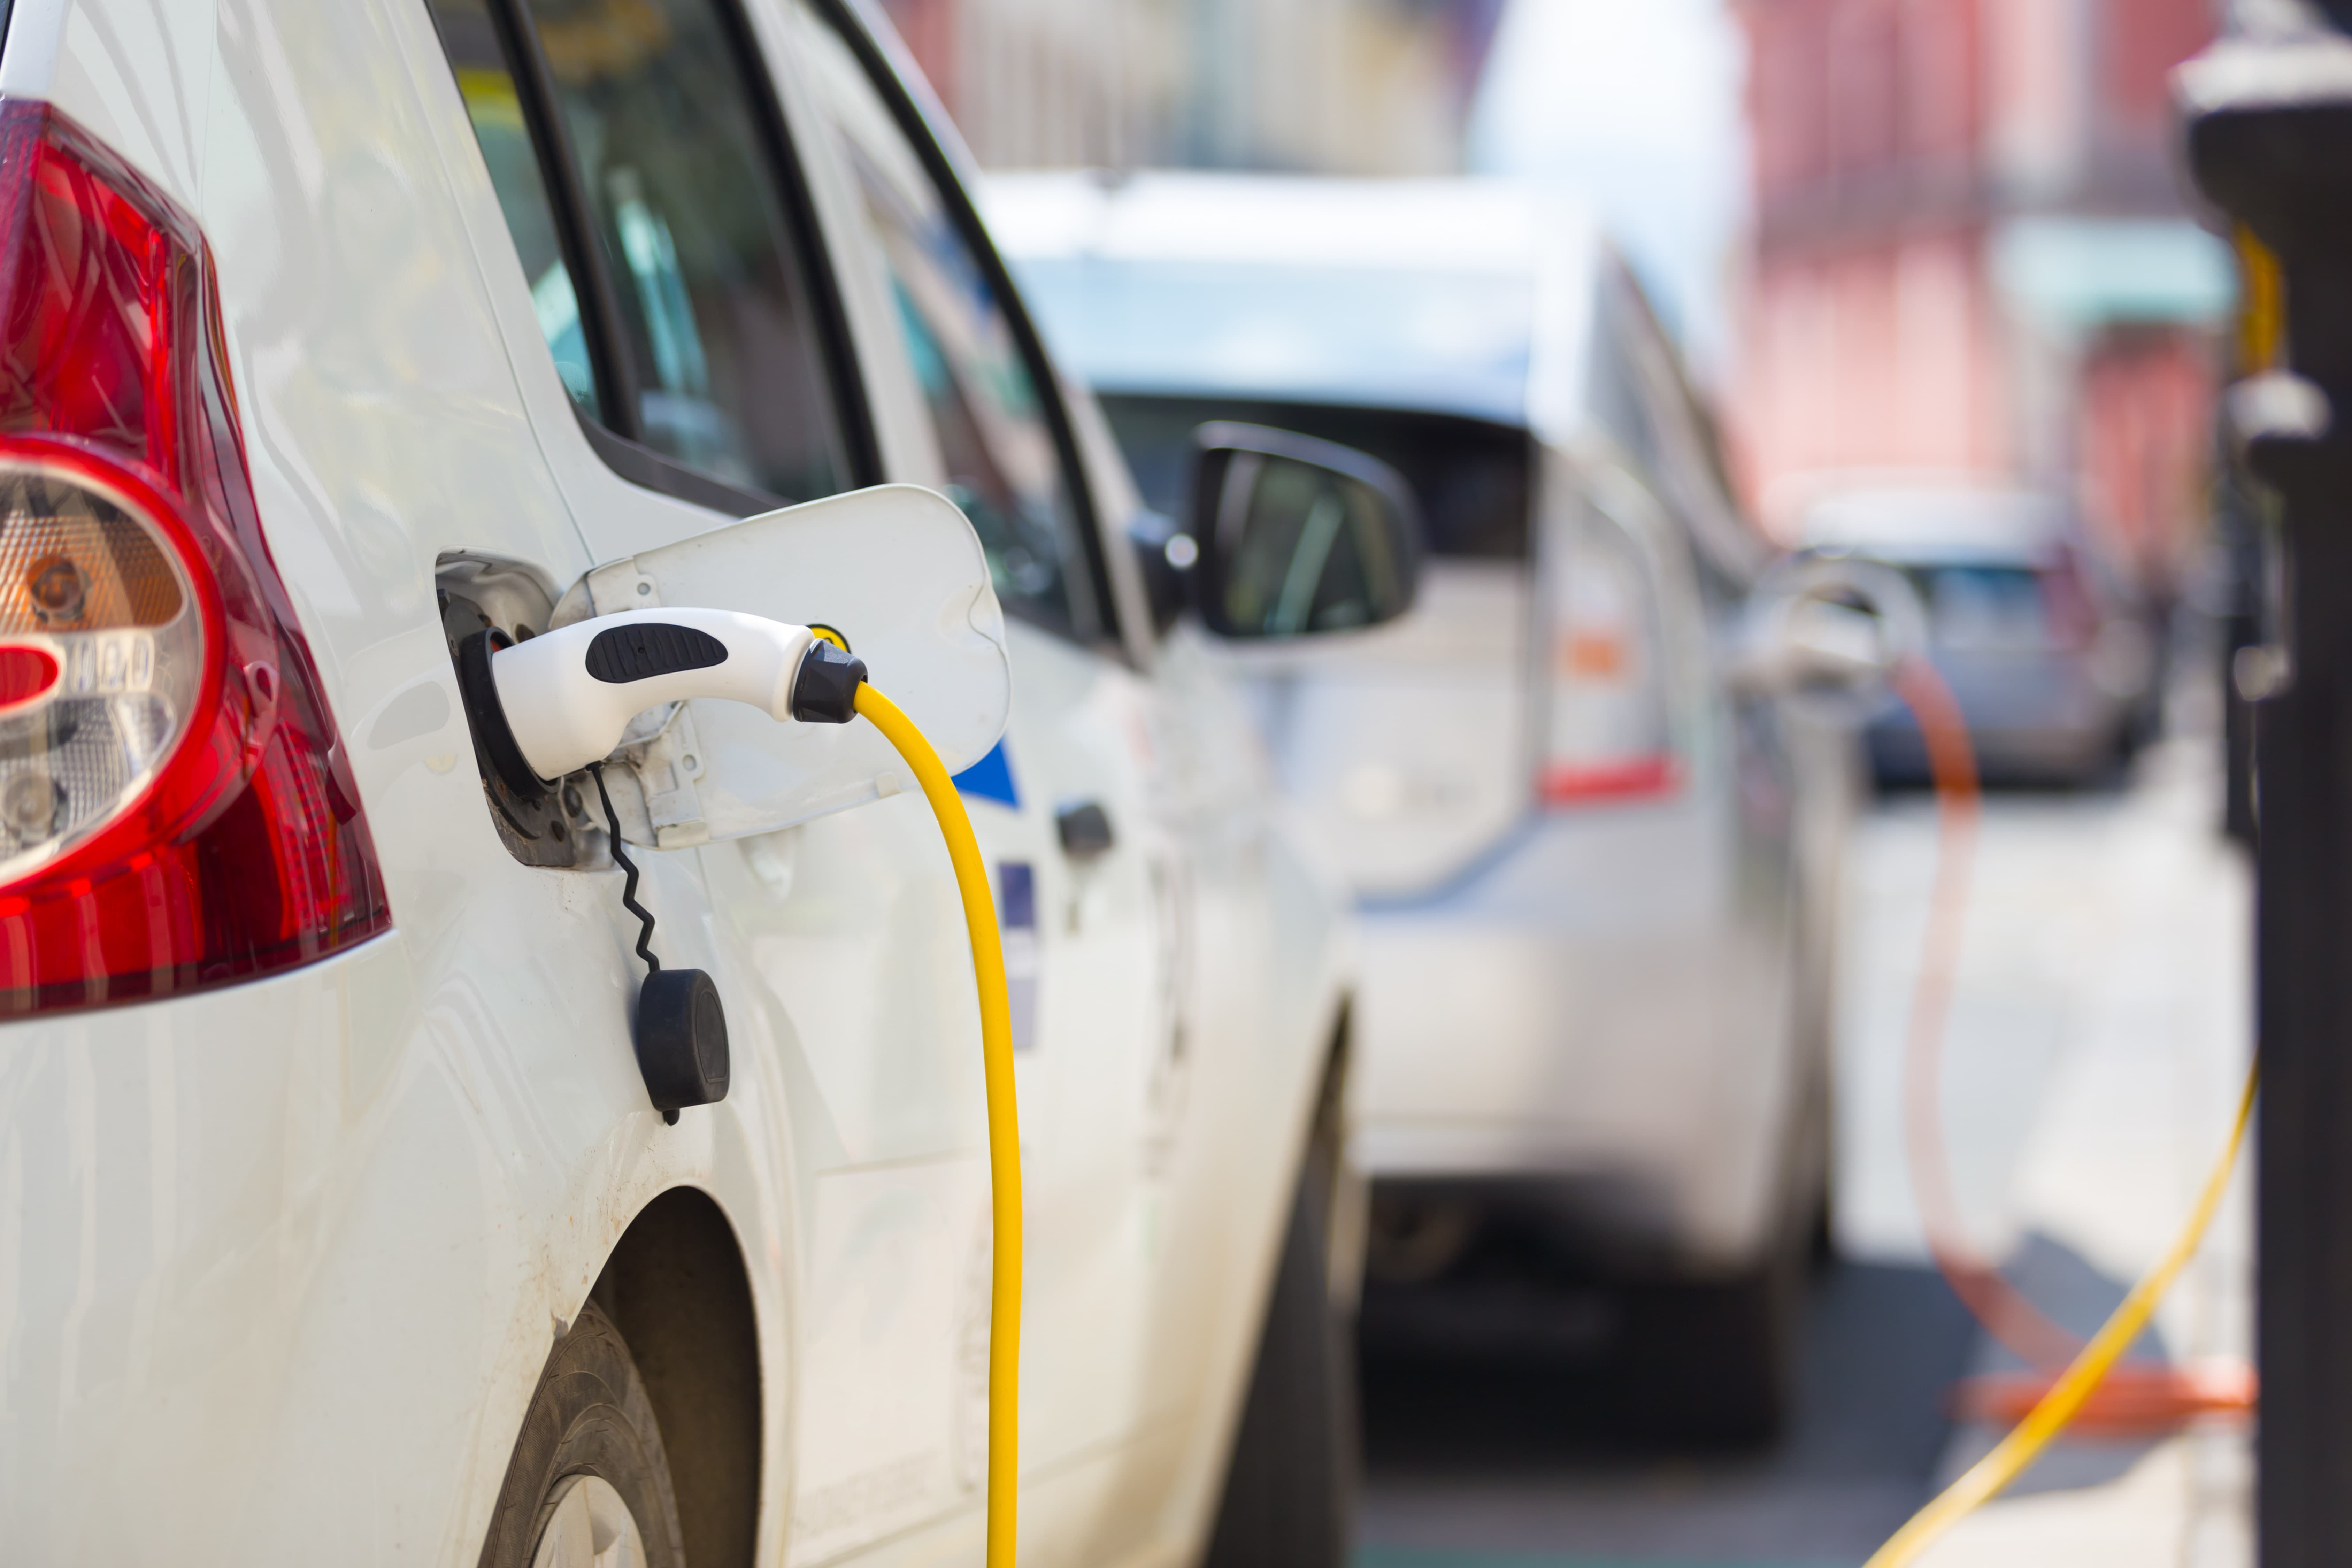 Potential obstacles are in the way of Dutch climate objectives to deploy 1,900,000 electric vehicles by 2030, up from 142,000 electric cars on the road in 2018.